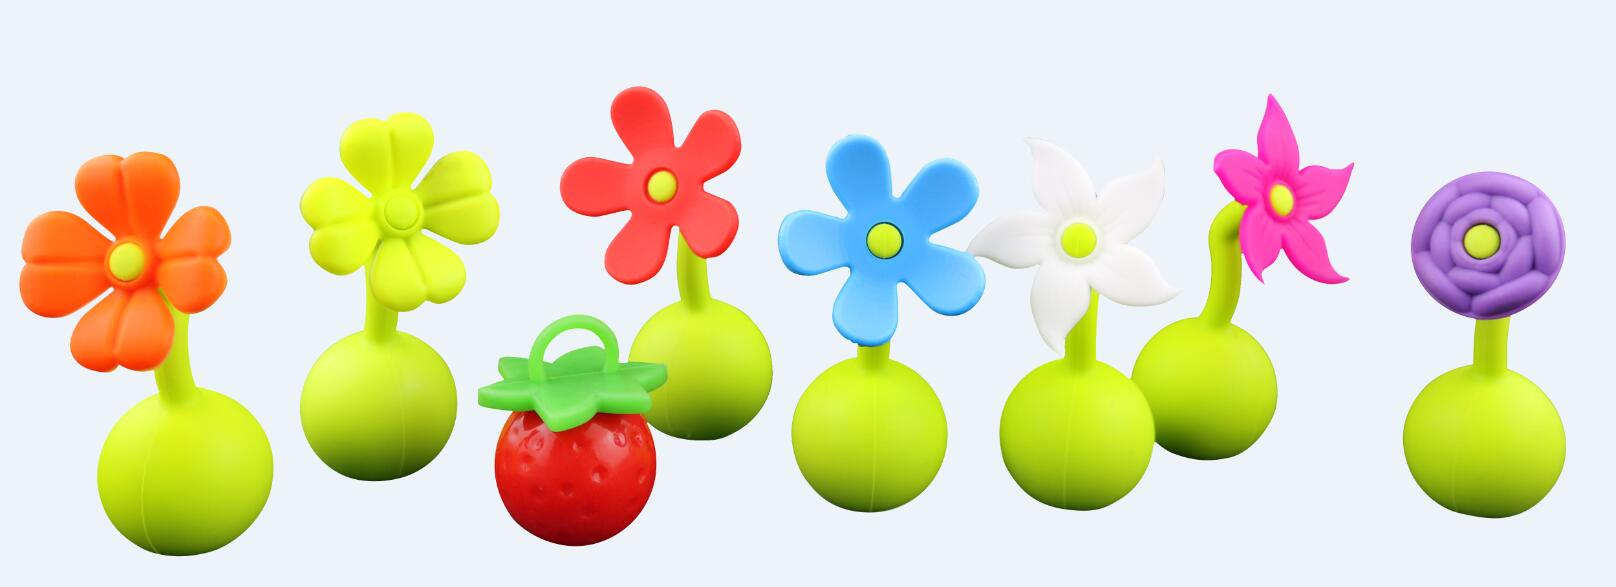 Quirks Marketing Philippines - Haakaa - Silicone Breast Pump Flower Stopper